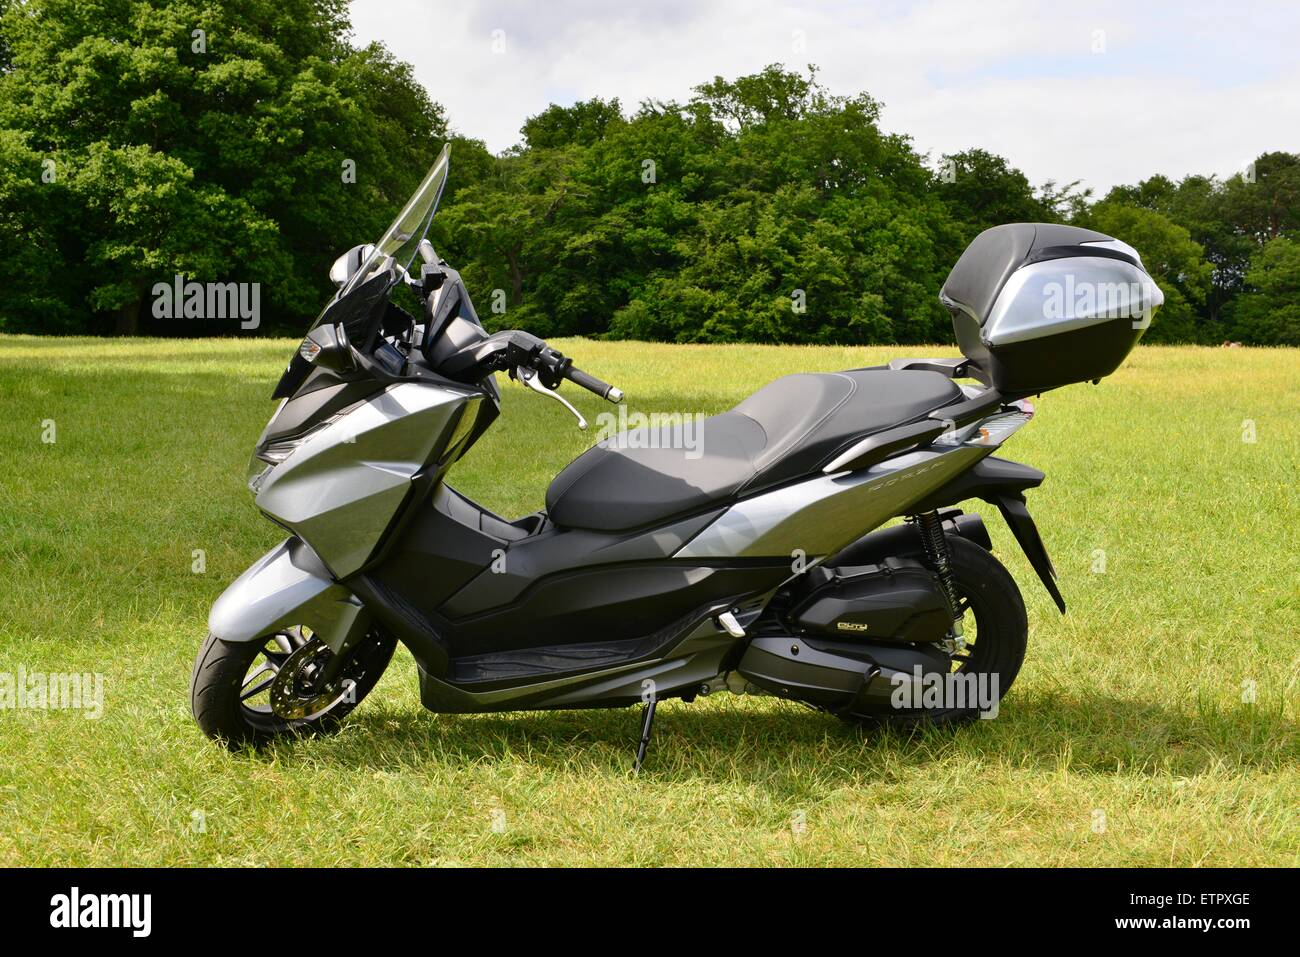 honda forza 125 scooter in a field at boxhill in dorking surrey stock photo 84097006 alamy. Black Bedroom Furniture Sets. Home Design Ideas